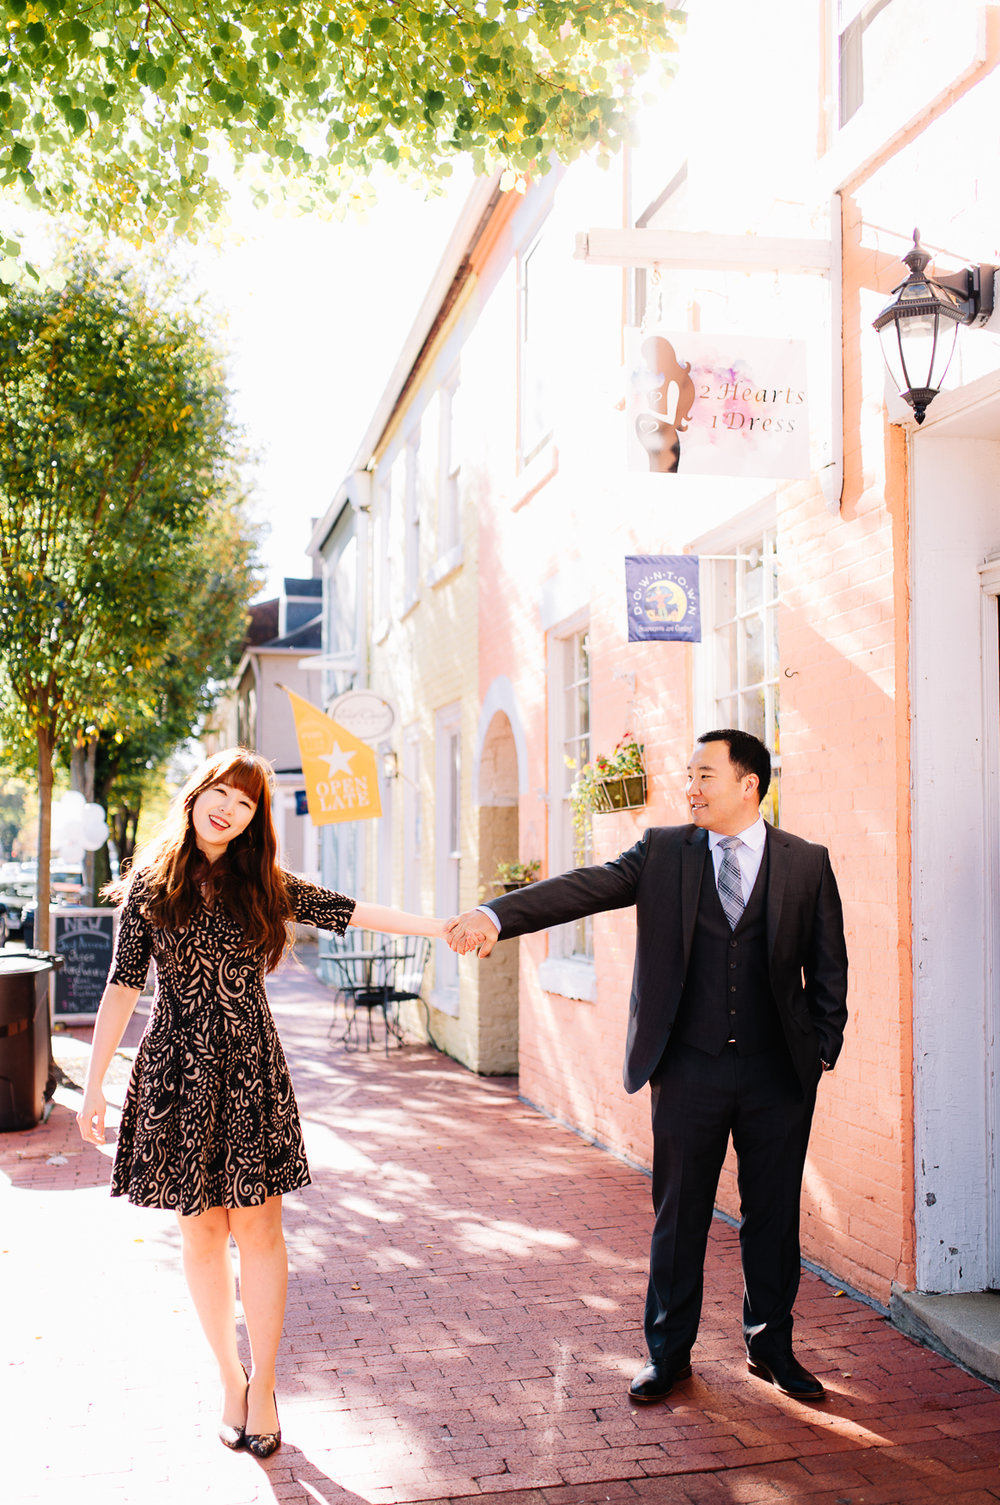 engagement_downtownfredericksburg_Fall_virginiaweddingphotographer_youseephotography_KatieKevin (13).jpg